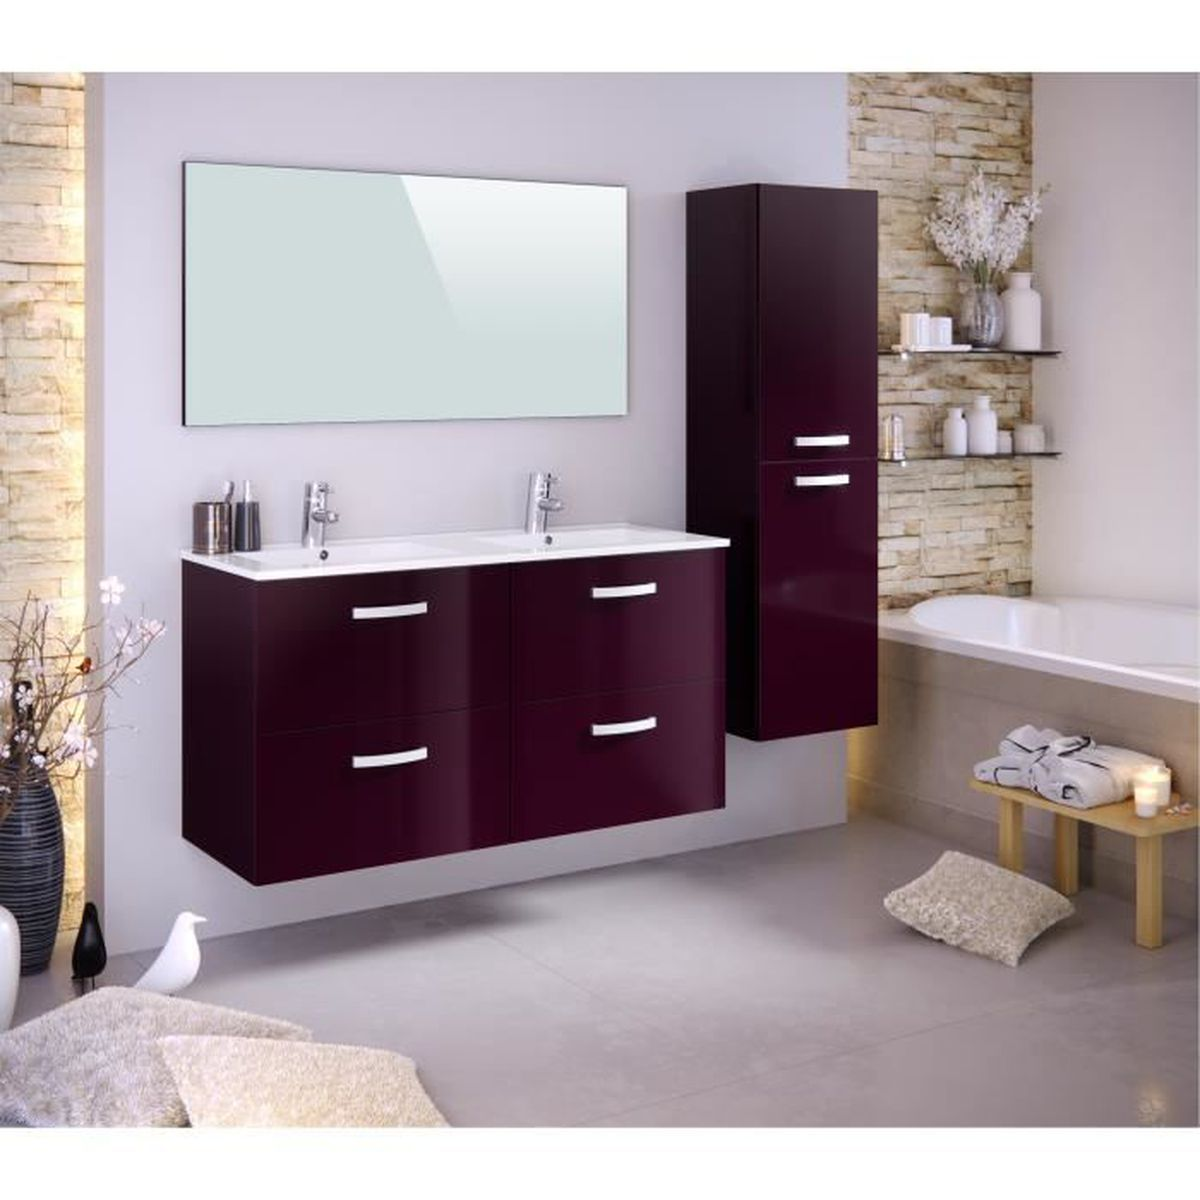 stella ensemble salle de bain double vasque l 120 cm avec colonne et miroir laqu aubergine. Black Bedroom Furniture Sets. Home Design Ideas